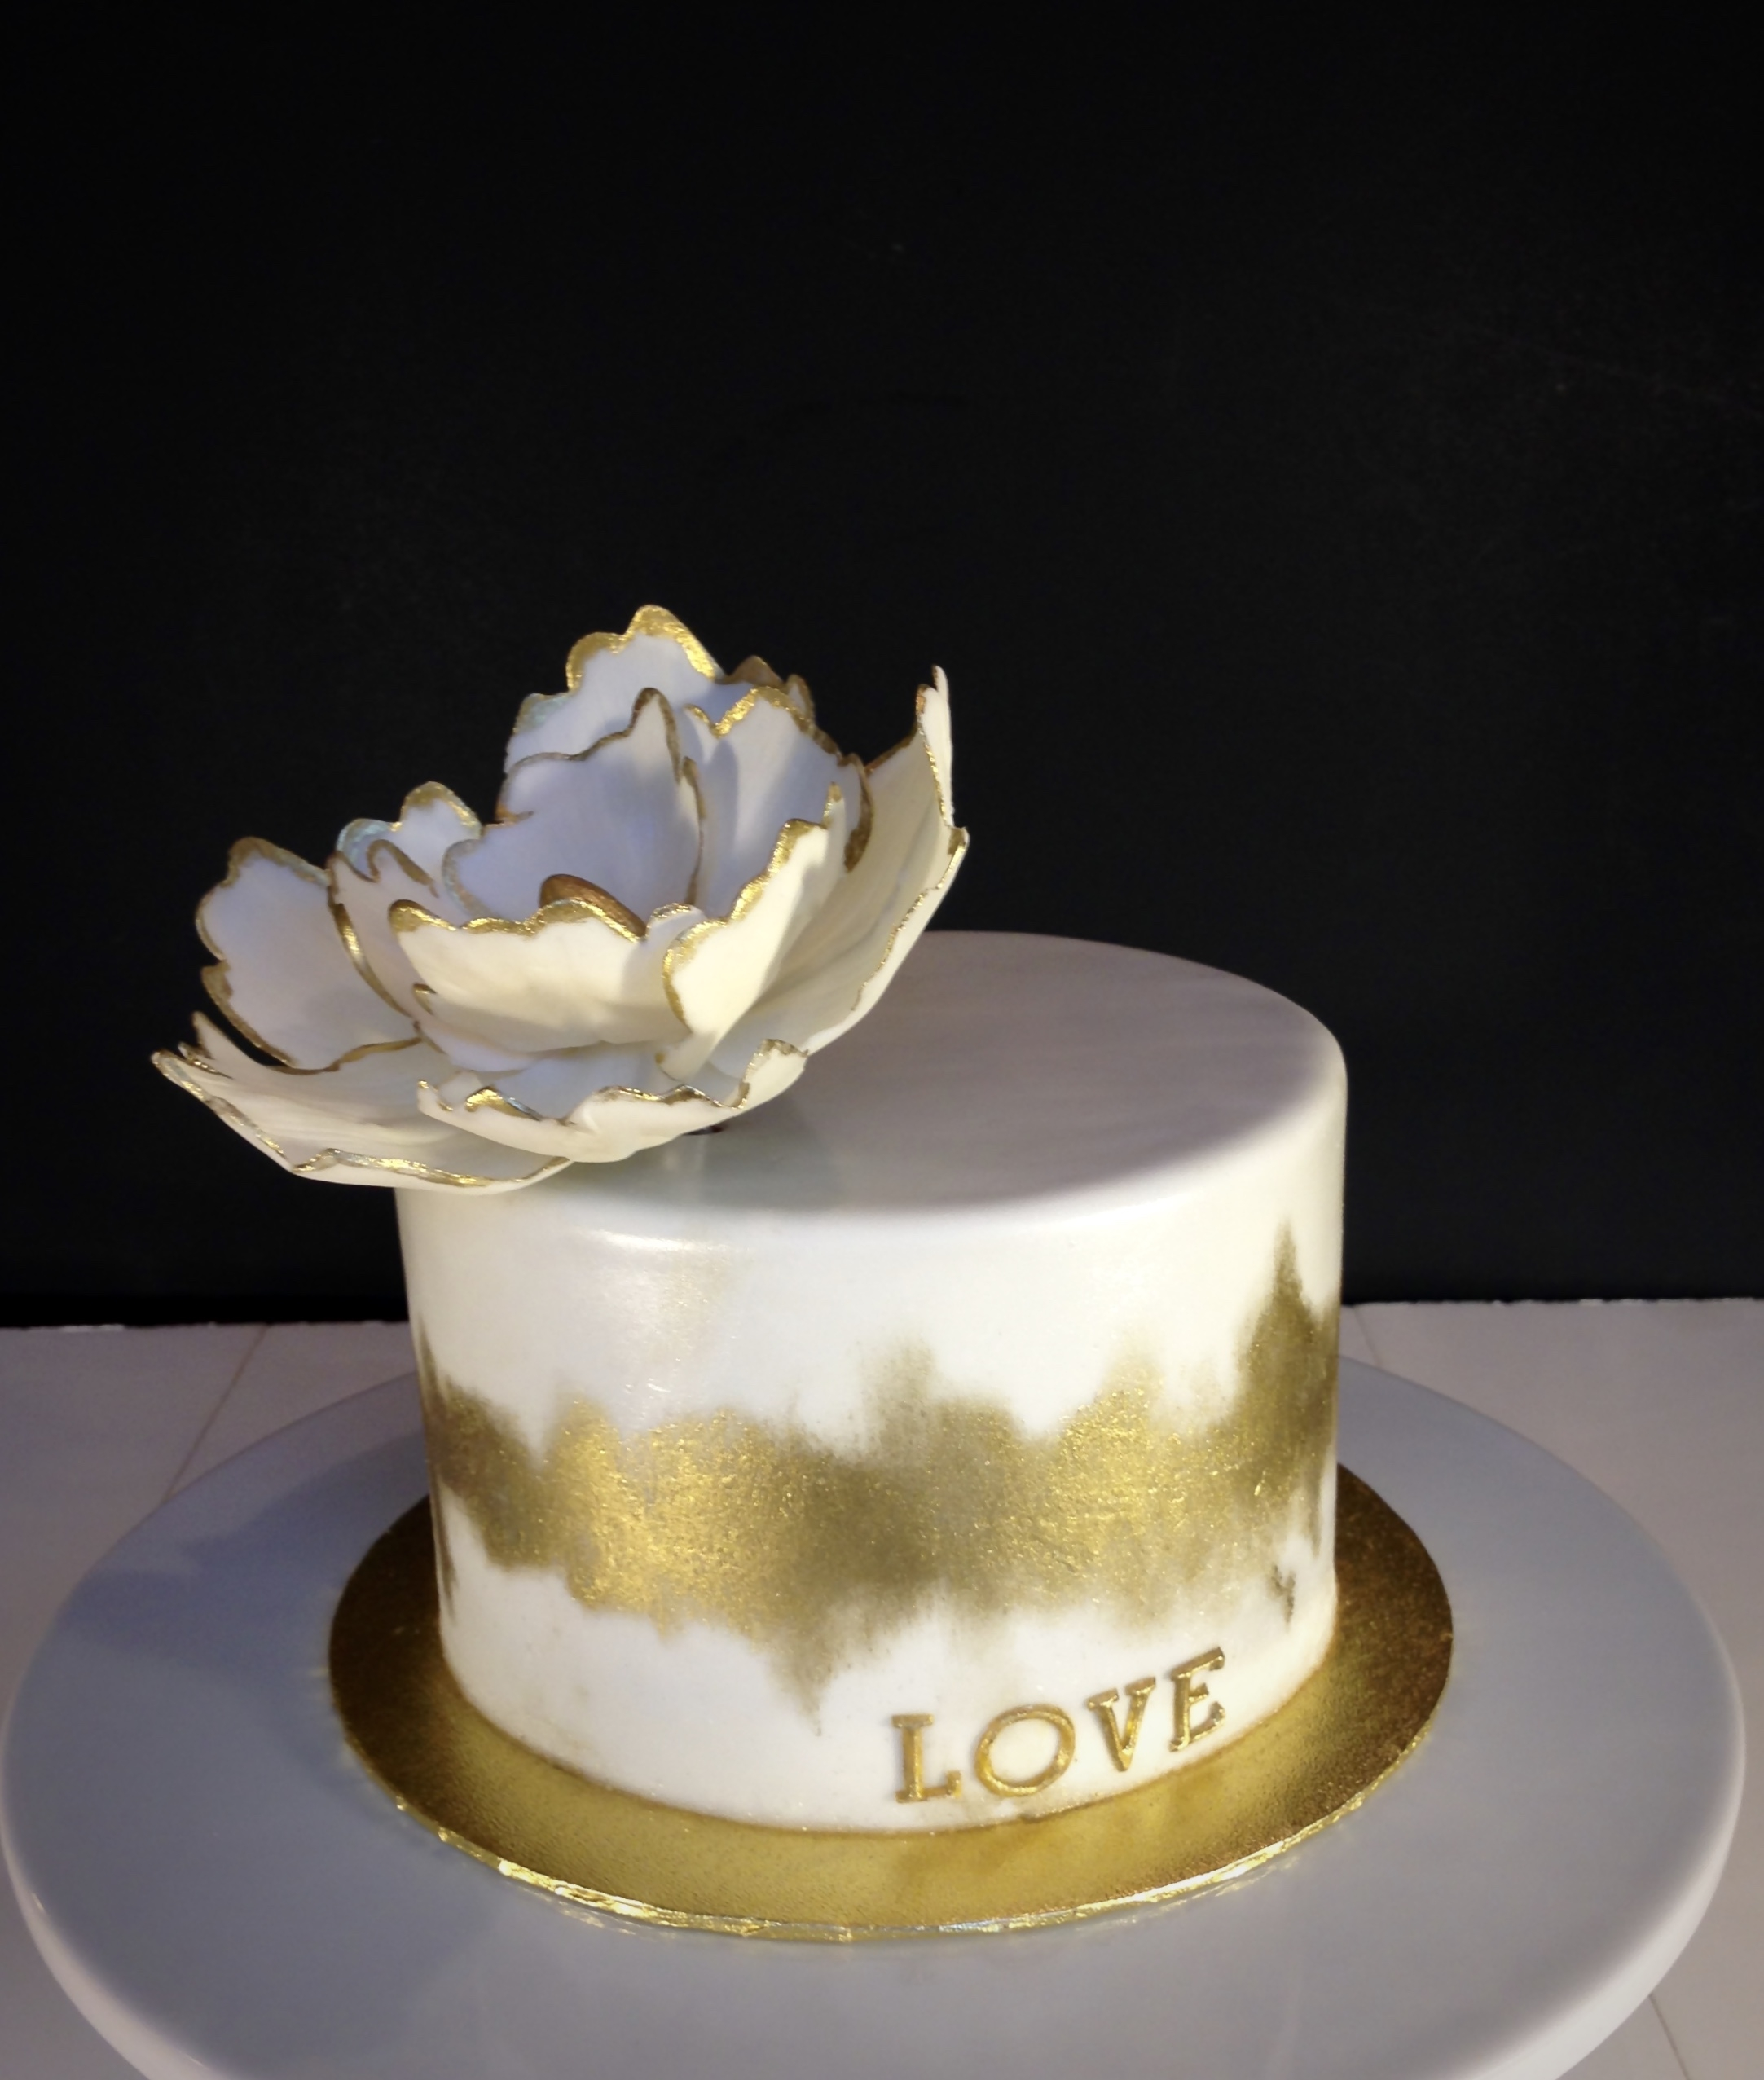 How To Decorate A Cake With Gold Dust